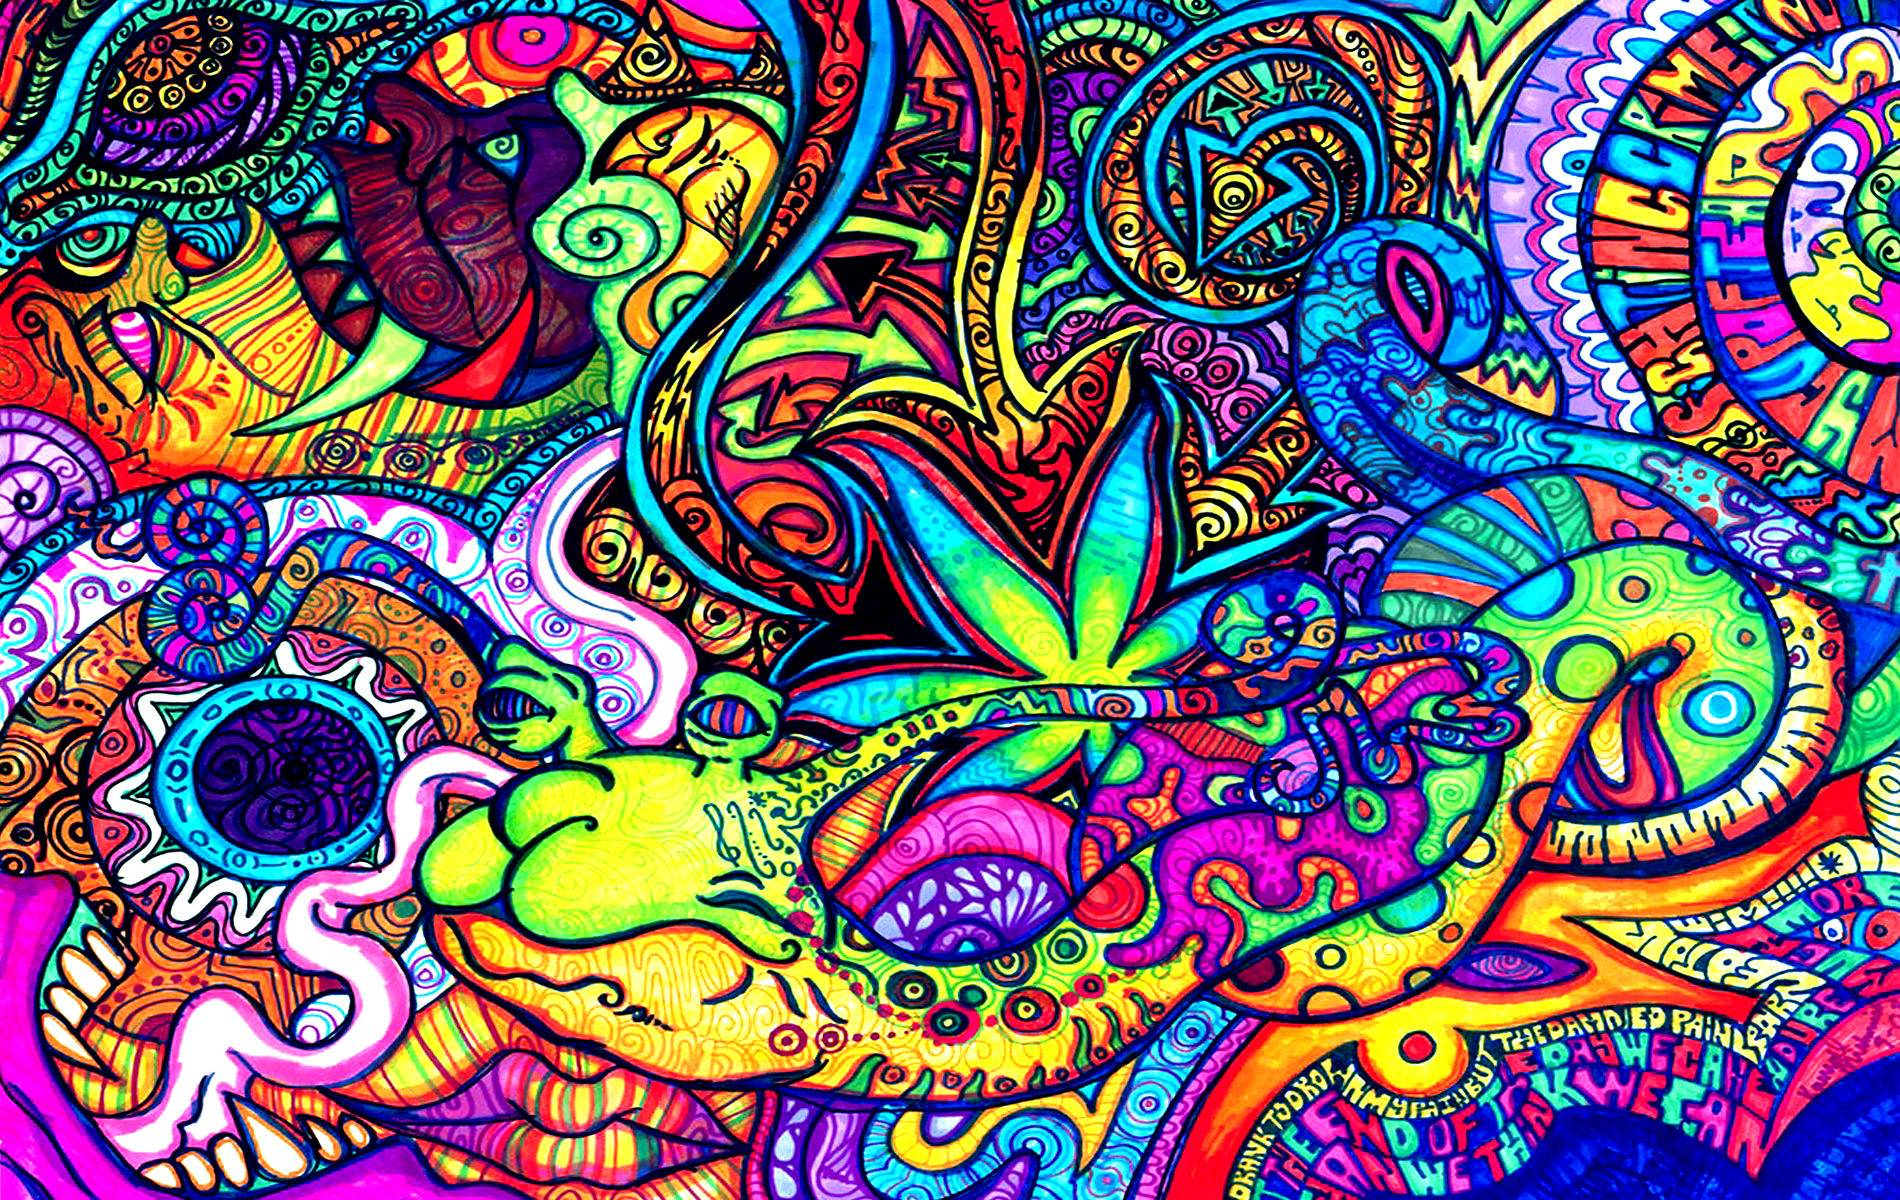 Trippy Laptop Wallpapers   Top Trippy Laptop Backgrounds 1900x1200